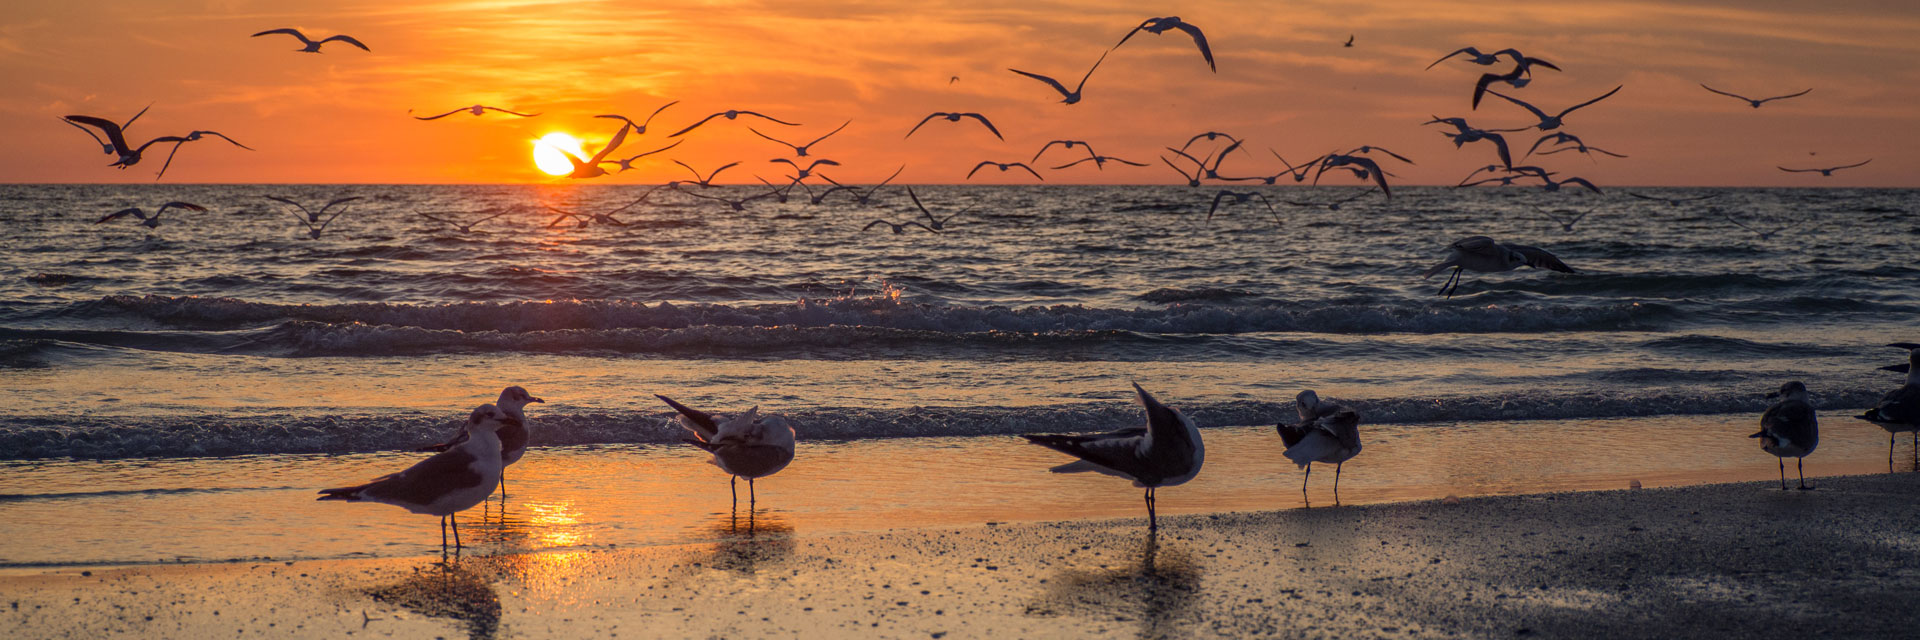 Beach birds and sunset over the water.